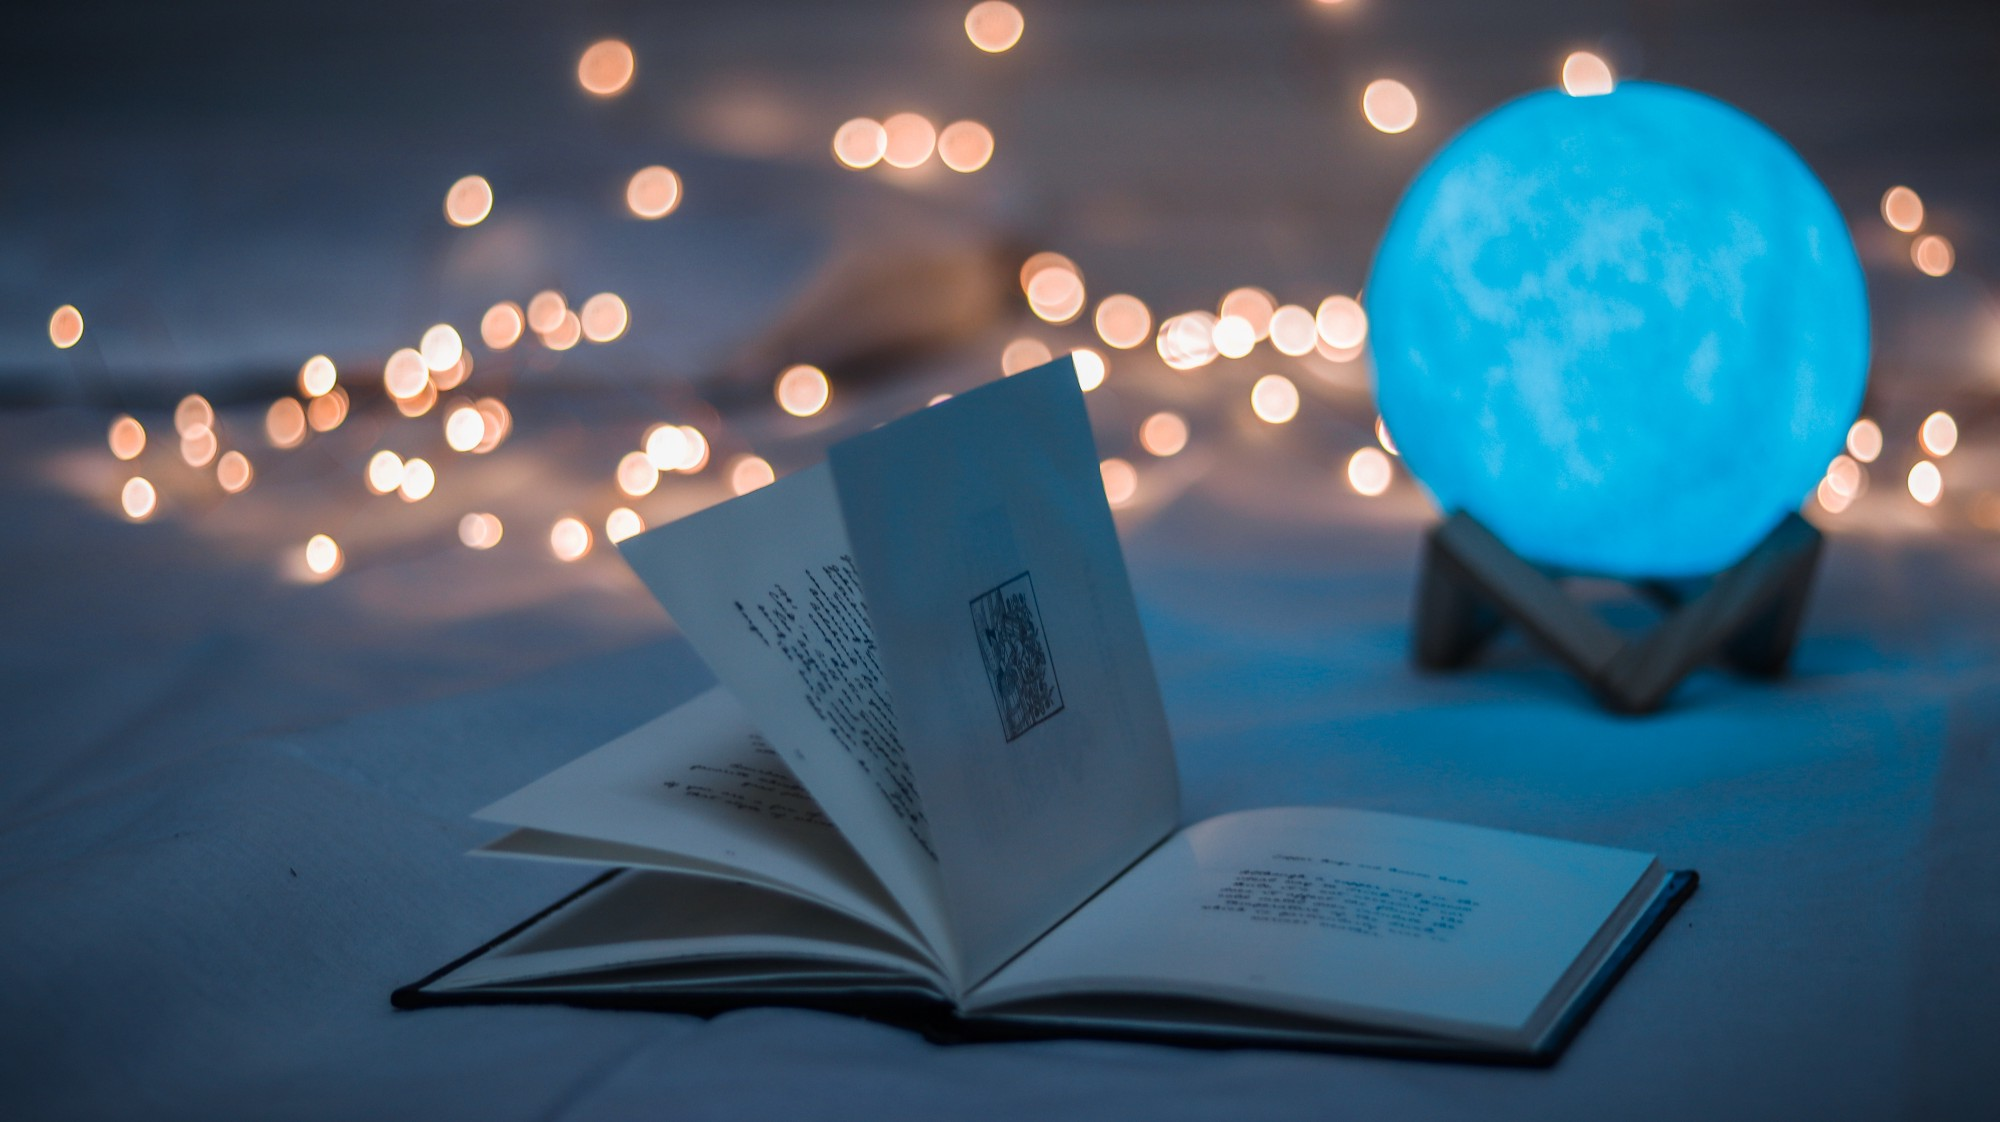 A book surrounded by a magical setting